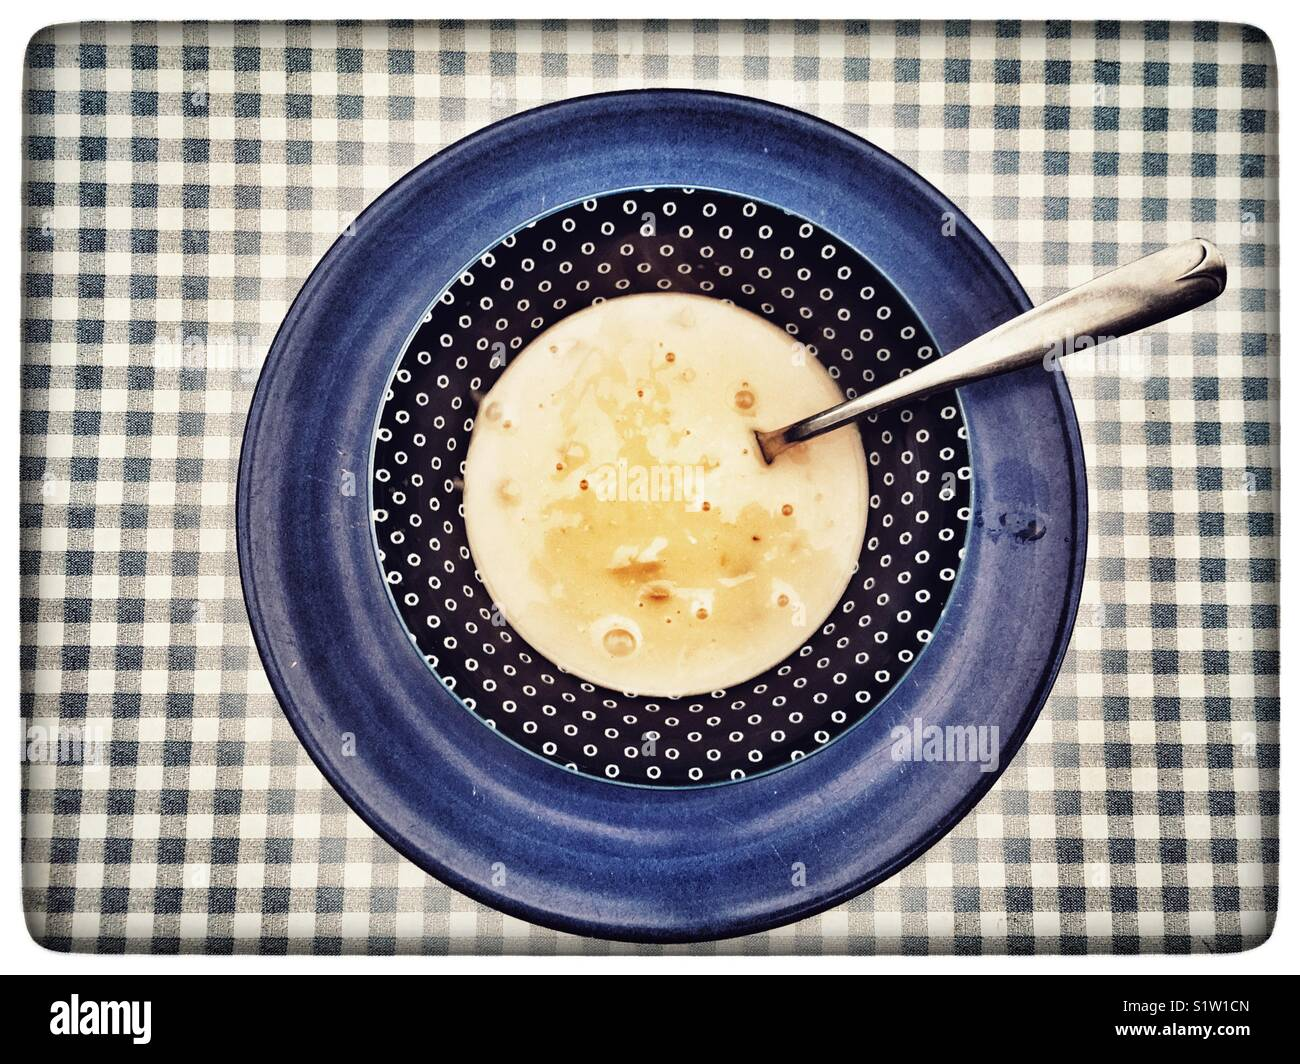 Elsinore Clam Chowder soup - Stock Image